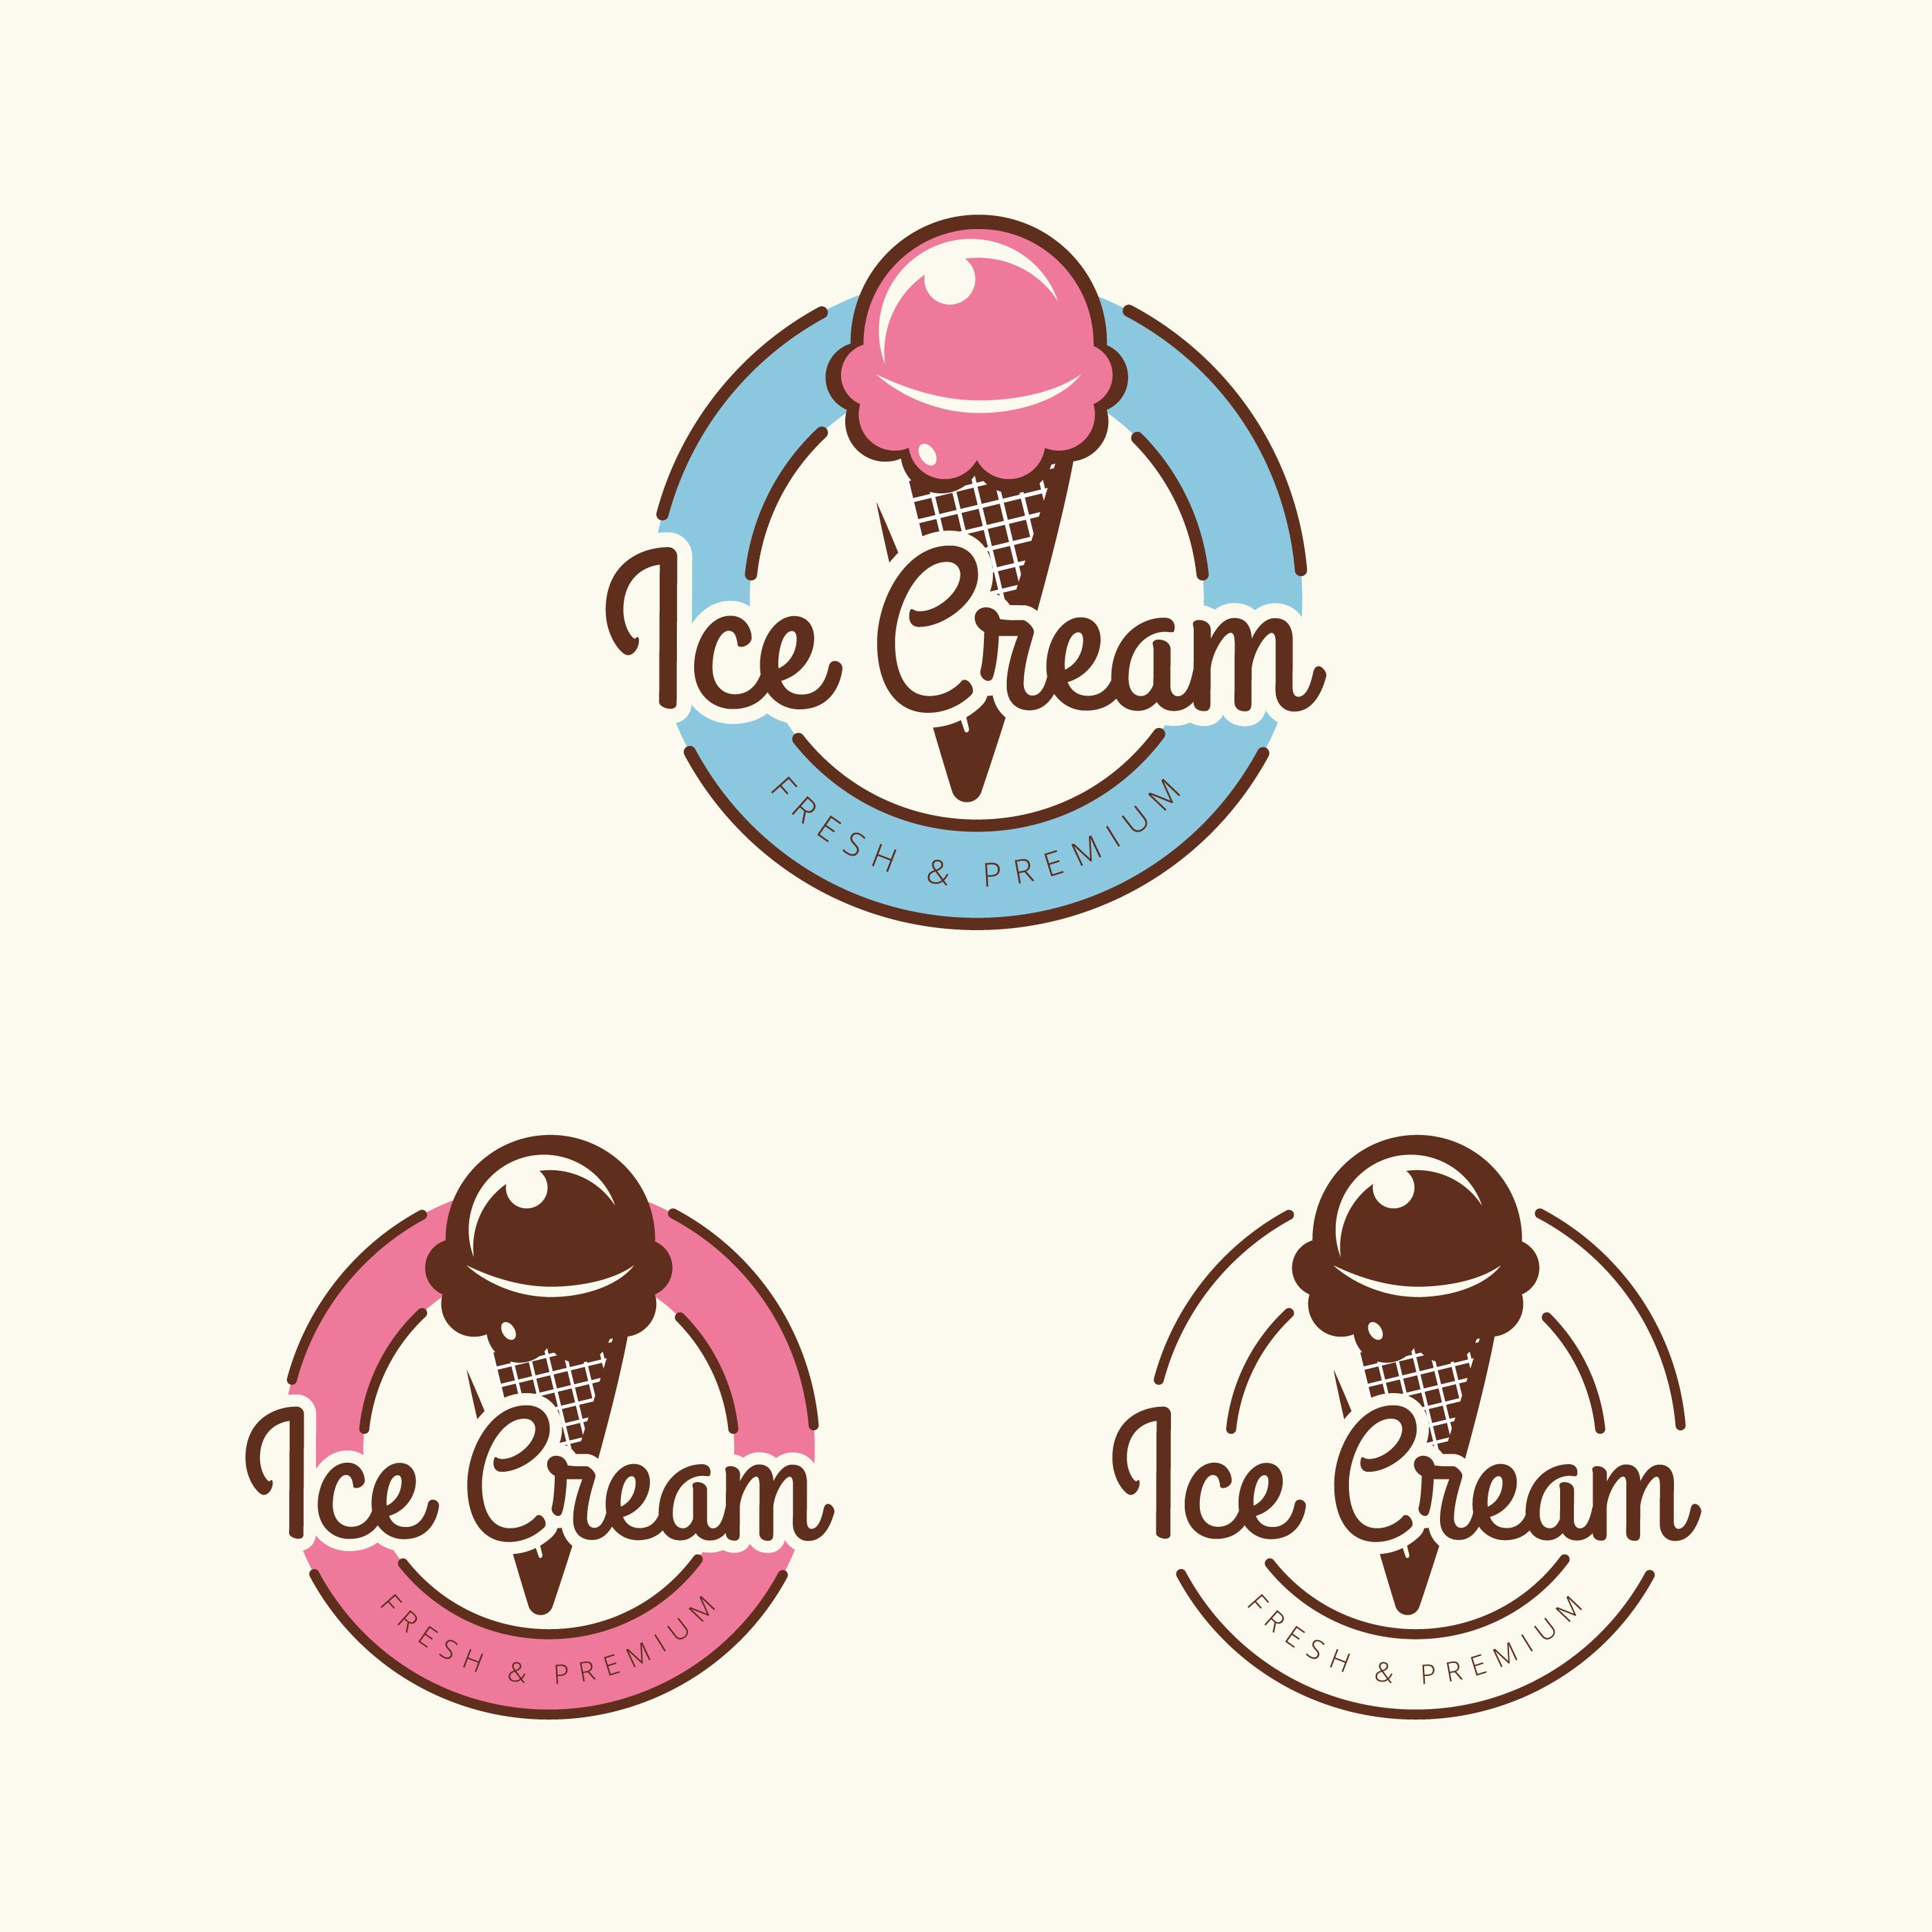 Scoop Free Vector Art 1762 Free Downloads Ice Cream Design Ice Cream Logo Ice Cream Shop